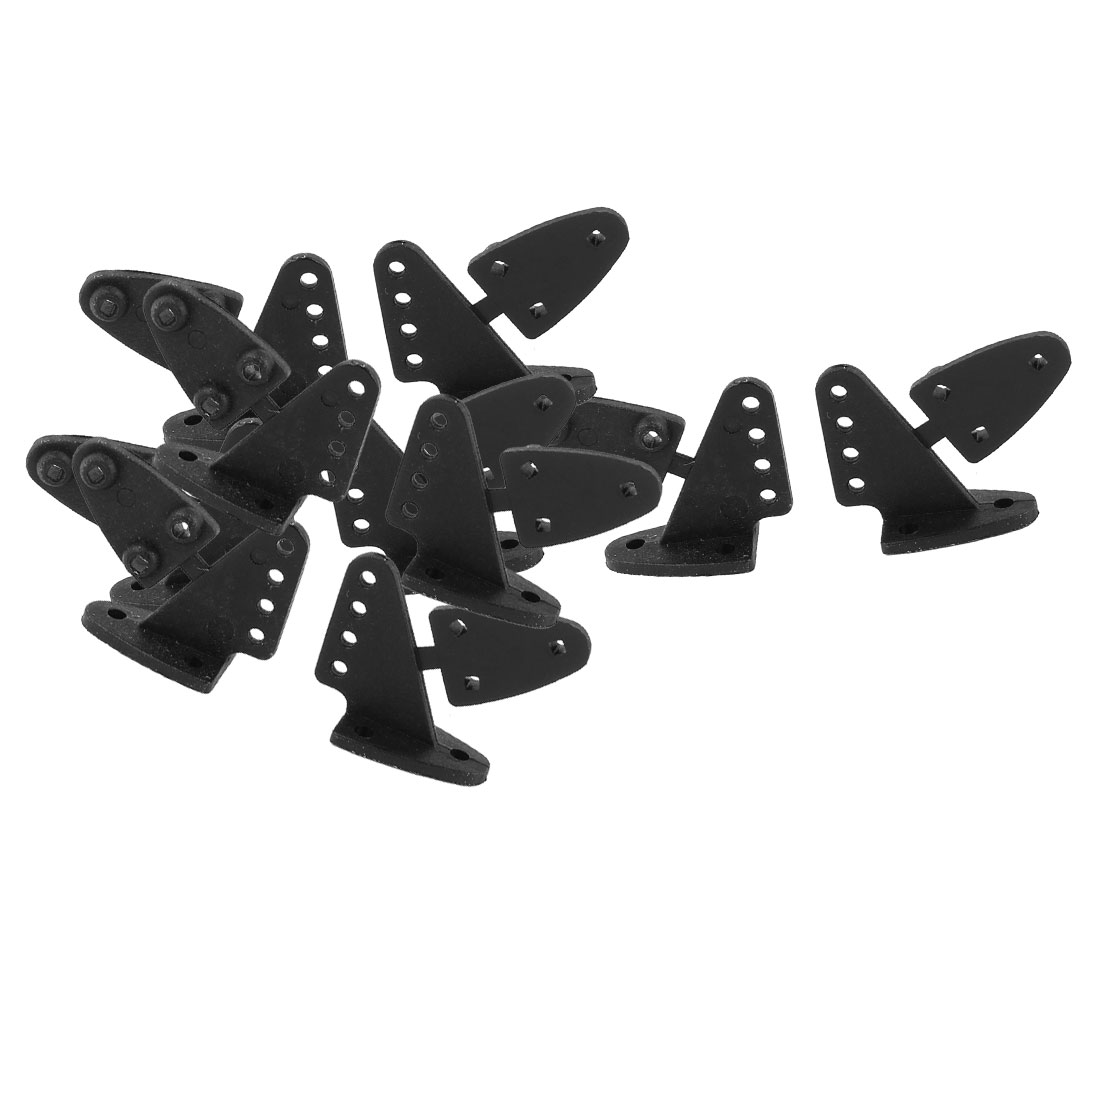 10pcs RC Remote Control Airplane Spare Parts 16.5x20.0mm Triangle Rudder Angle Black